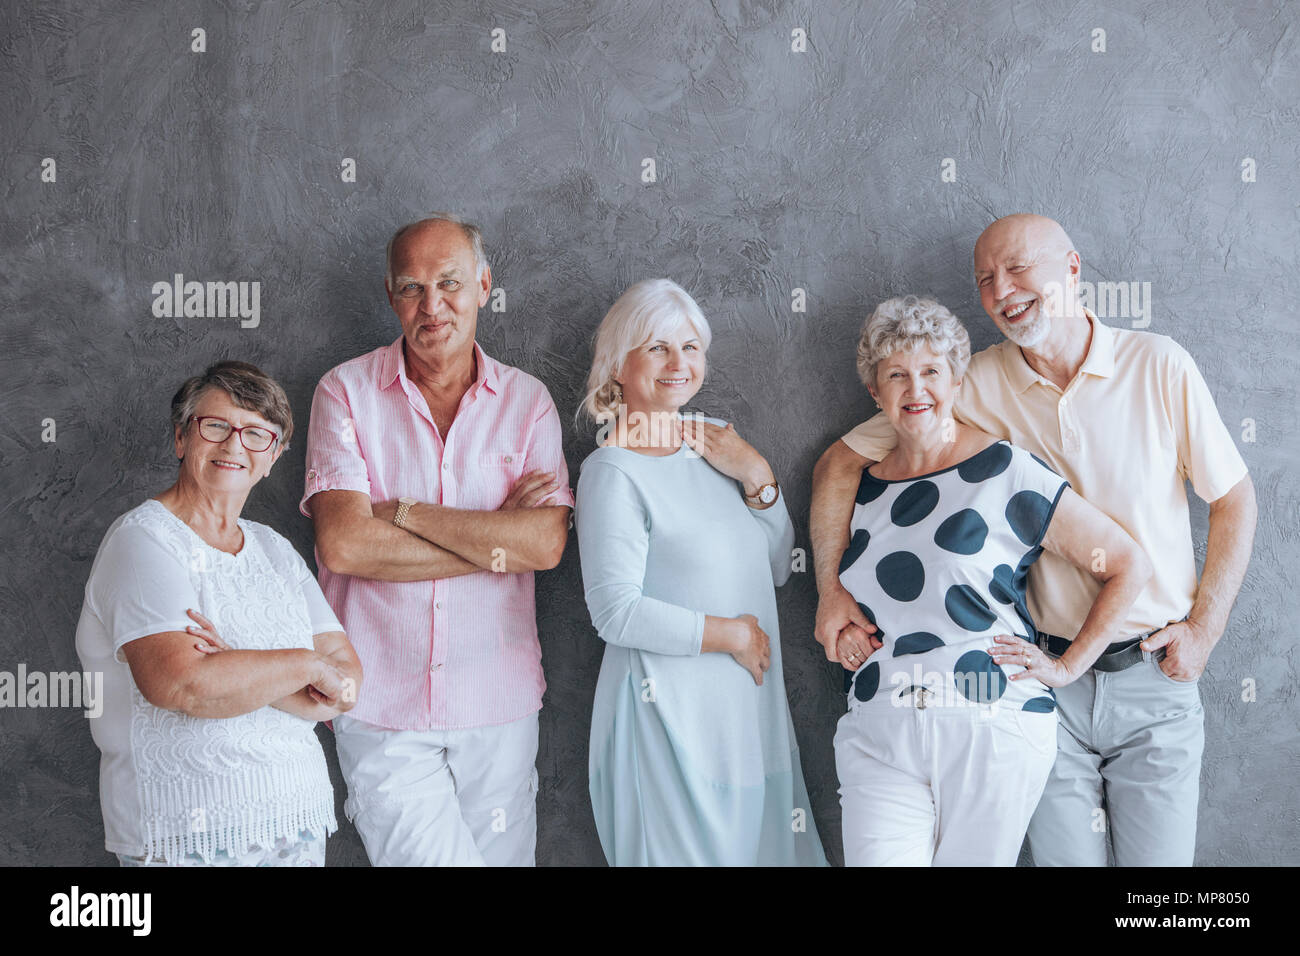 Happy elderly people in casual clothes against concrete wall. Seniors friendship concept Stock Photo